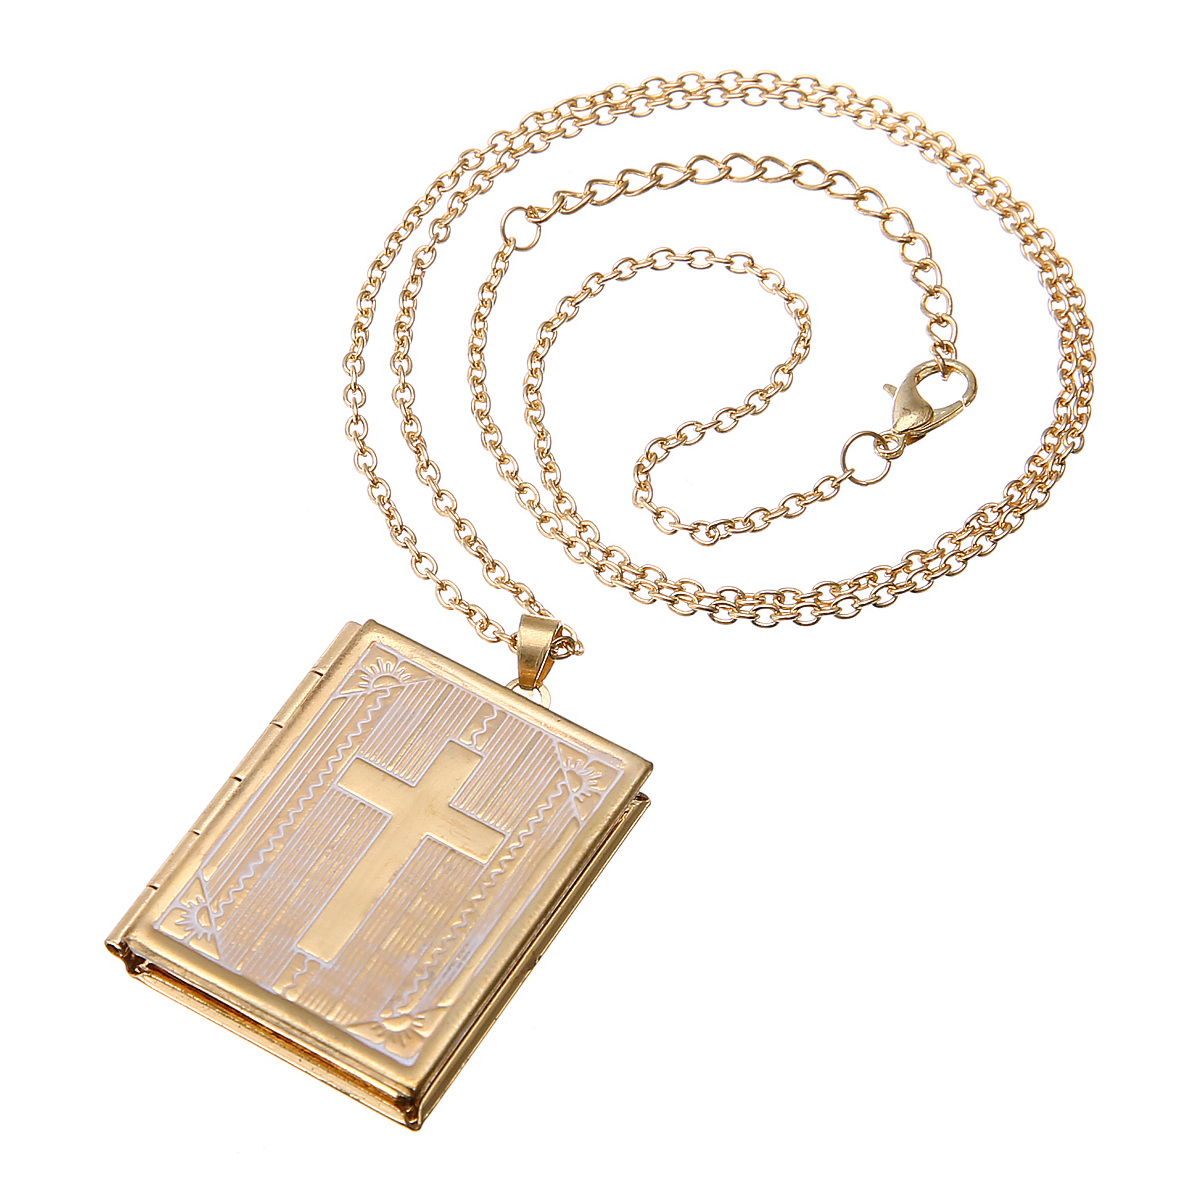 Romantic Sweet Love Heart Picture Photo Frame Memory Locket Pendant Necklace Beautifully Carved Box Gold Chain Charms Jewelry